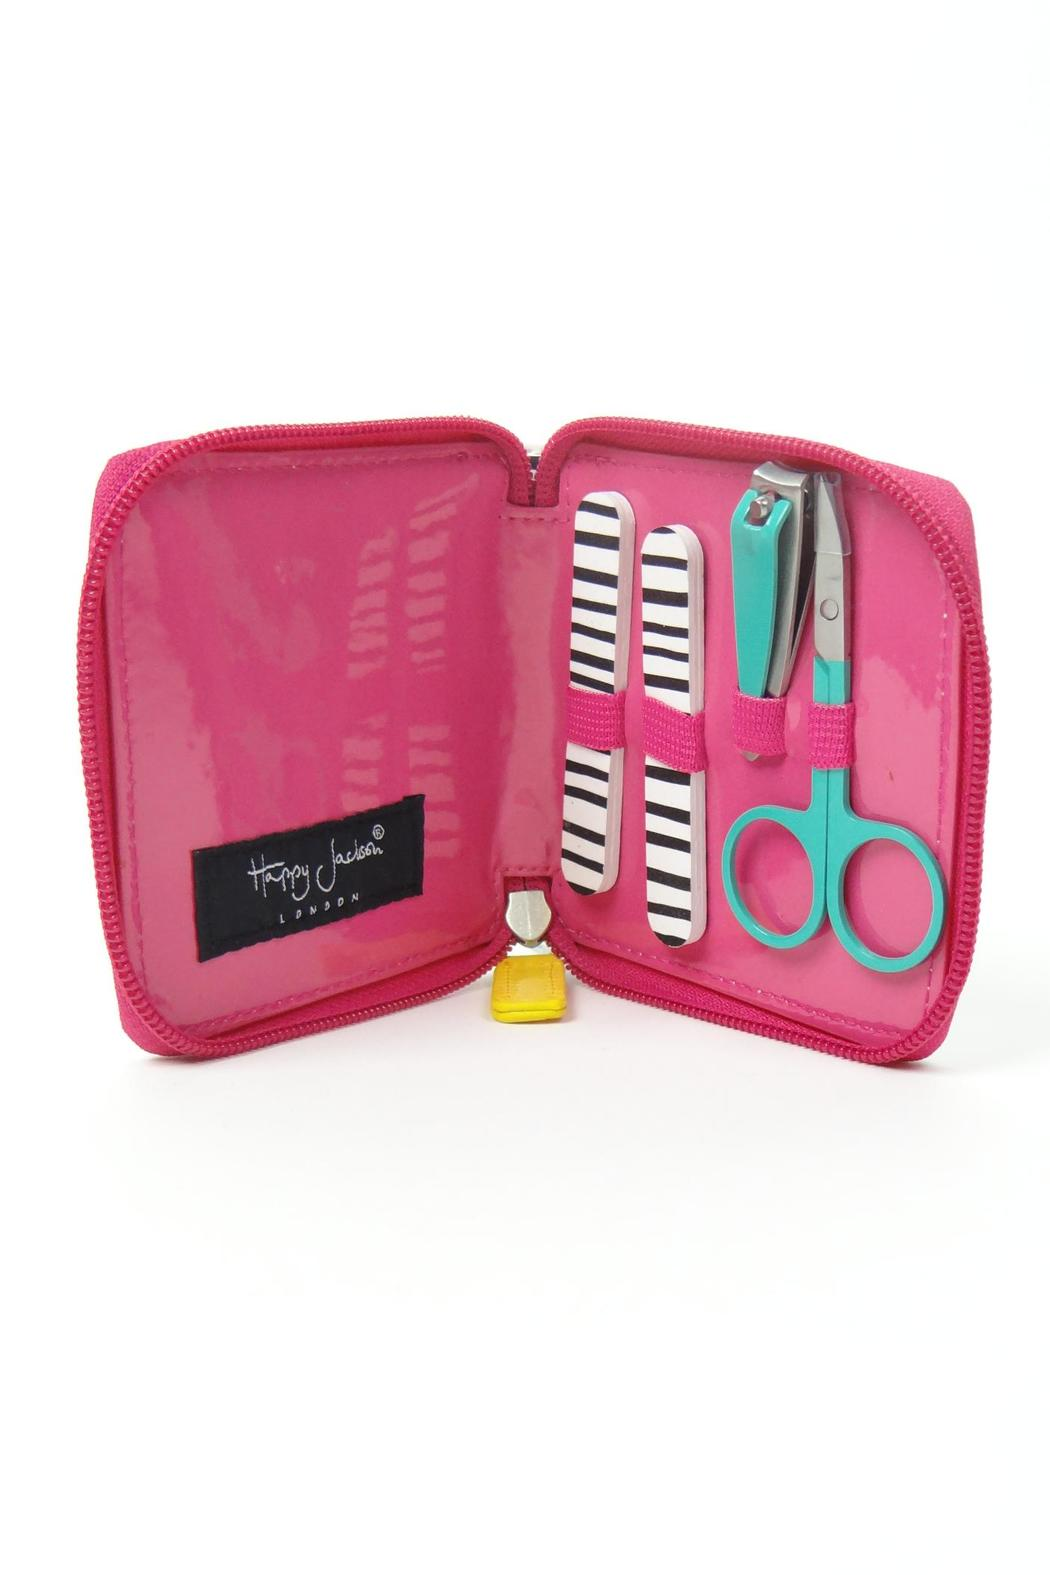 Happy Jackson Nice-Nails Manicure Set from Michigan by Let\'s Talk ...